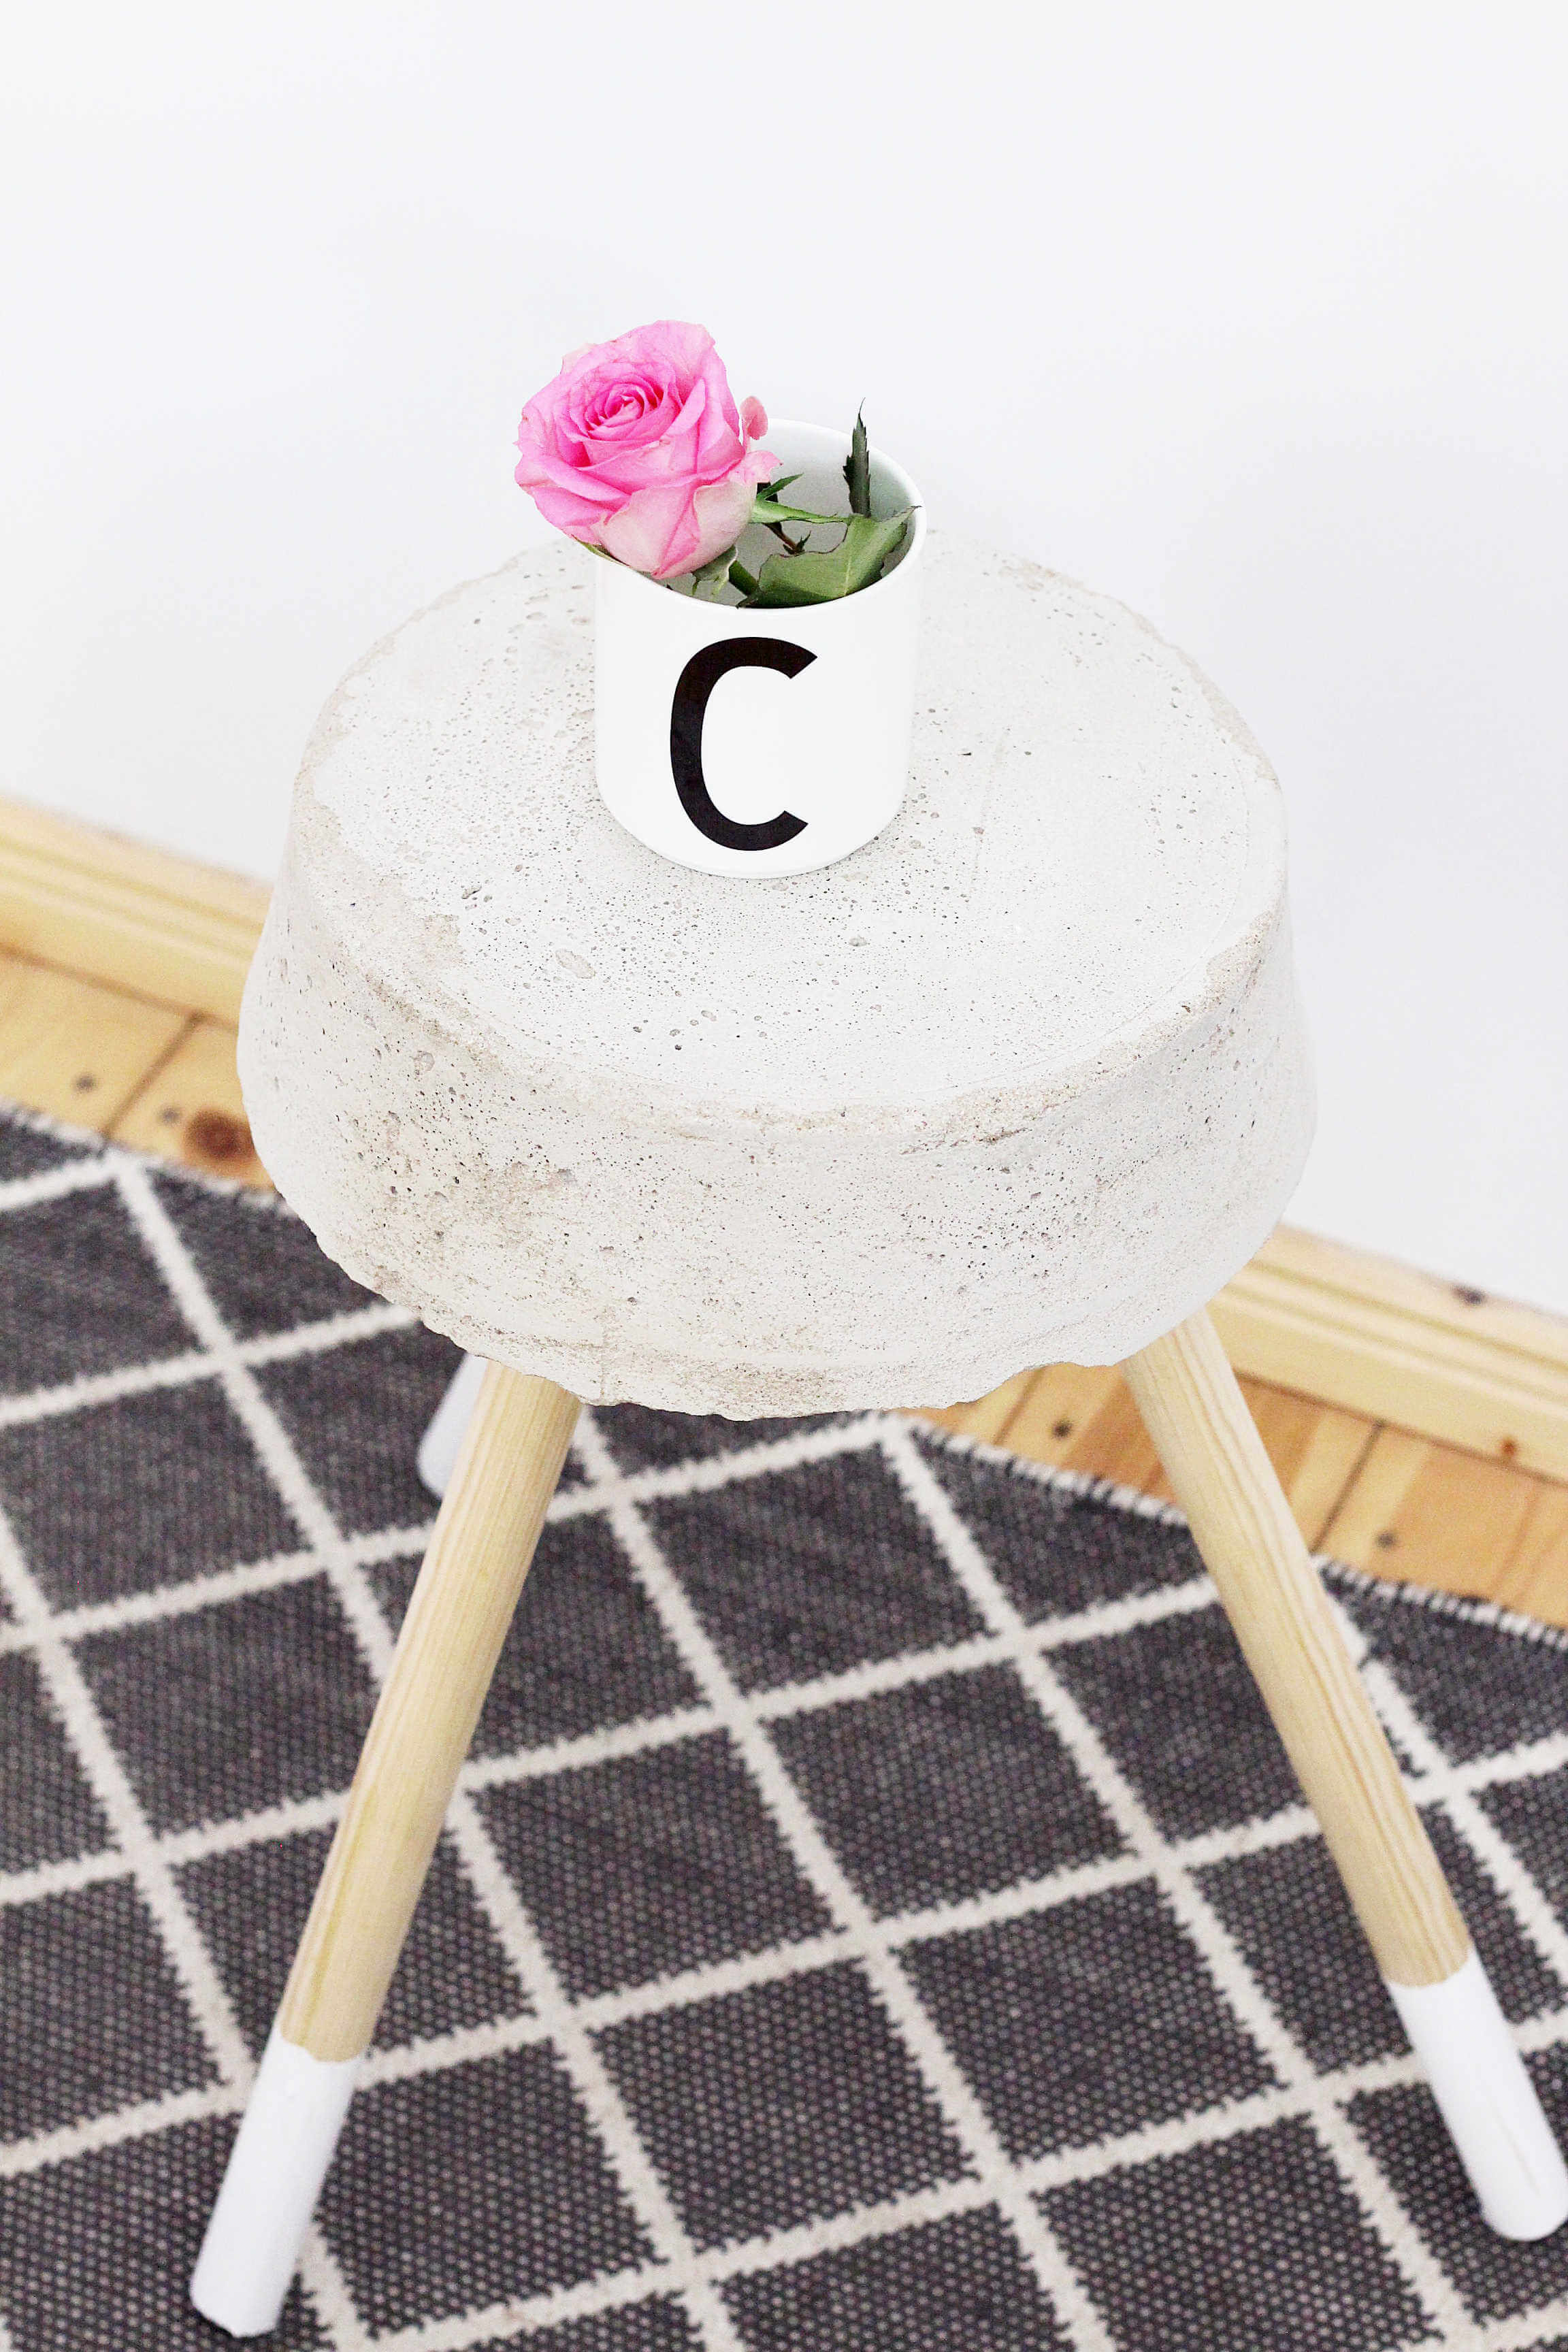 diy-hocker-beton-zement-moebel-selbermachen-scandi-diy-blog